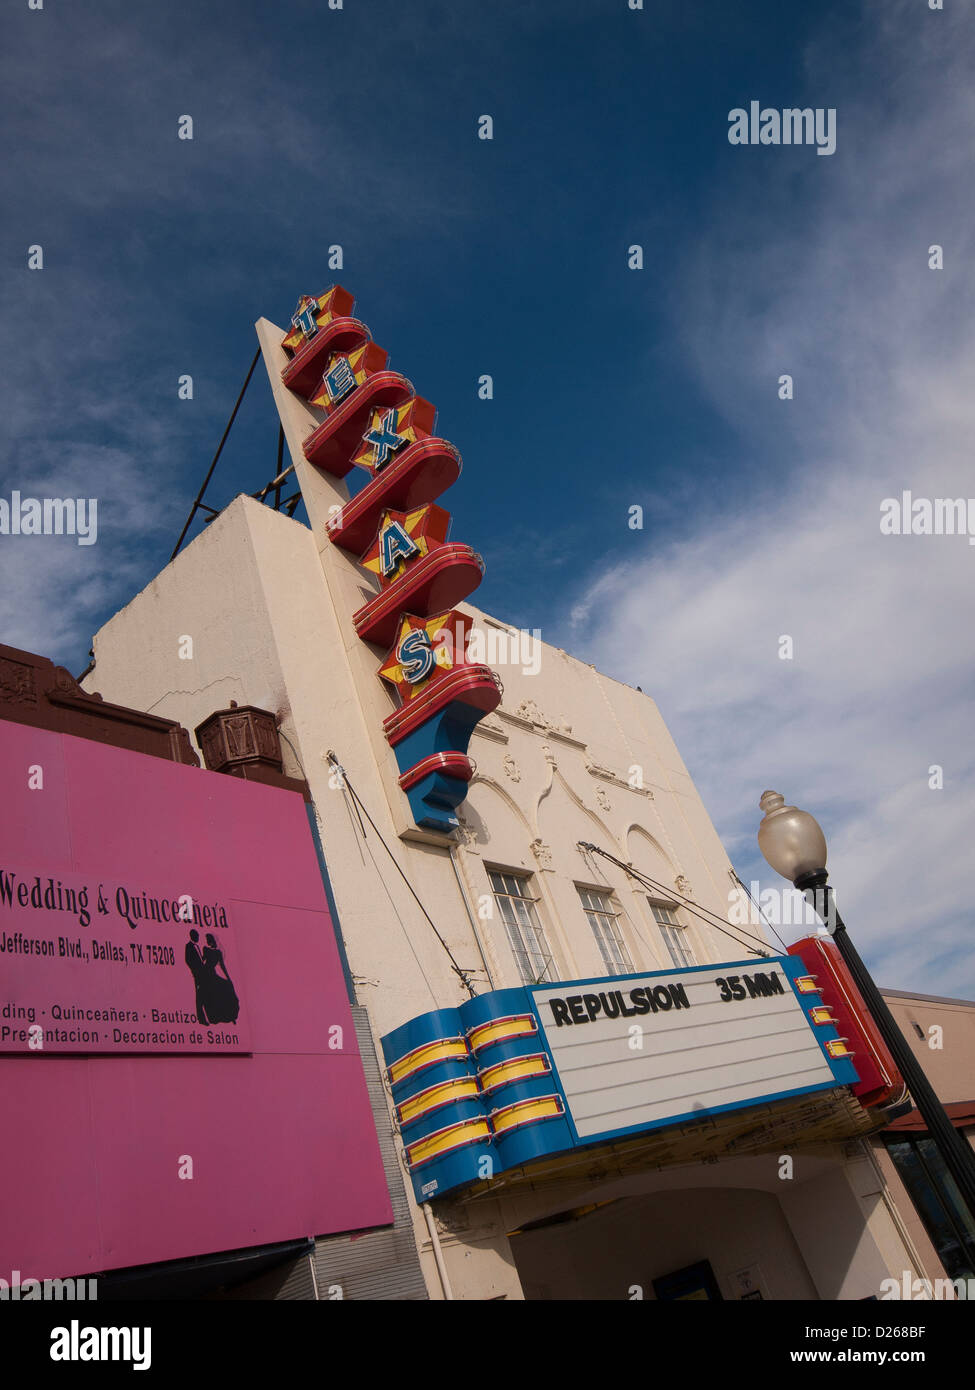 Texas Theatre where Oswald entered without paying and was arrested at 2 p.m. on November 22, 1963 - Stock Image